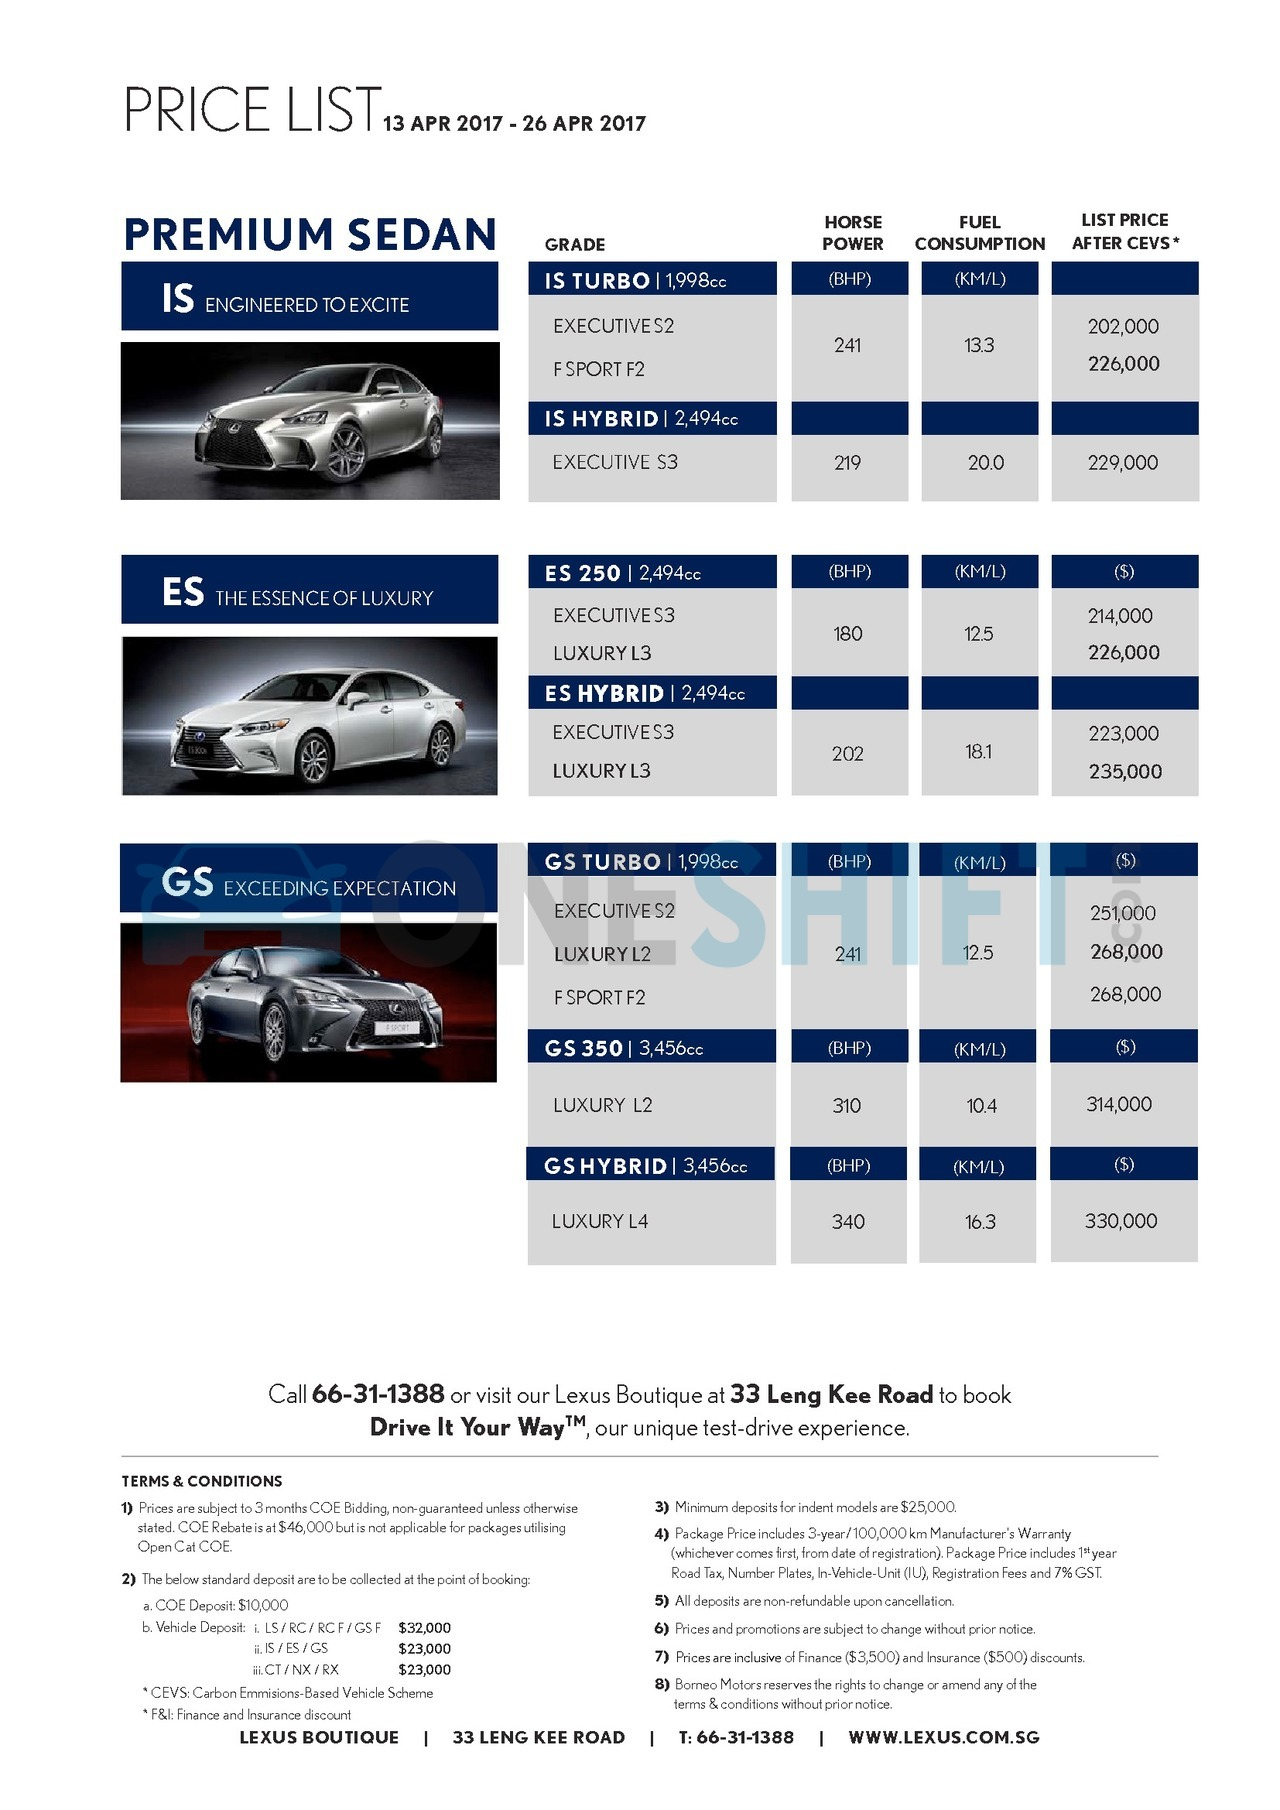 lexus Price List 4-13-2017 Page 1